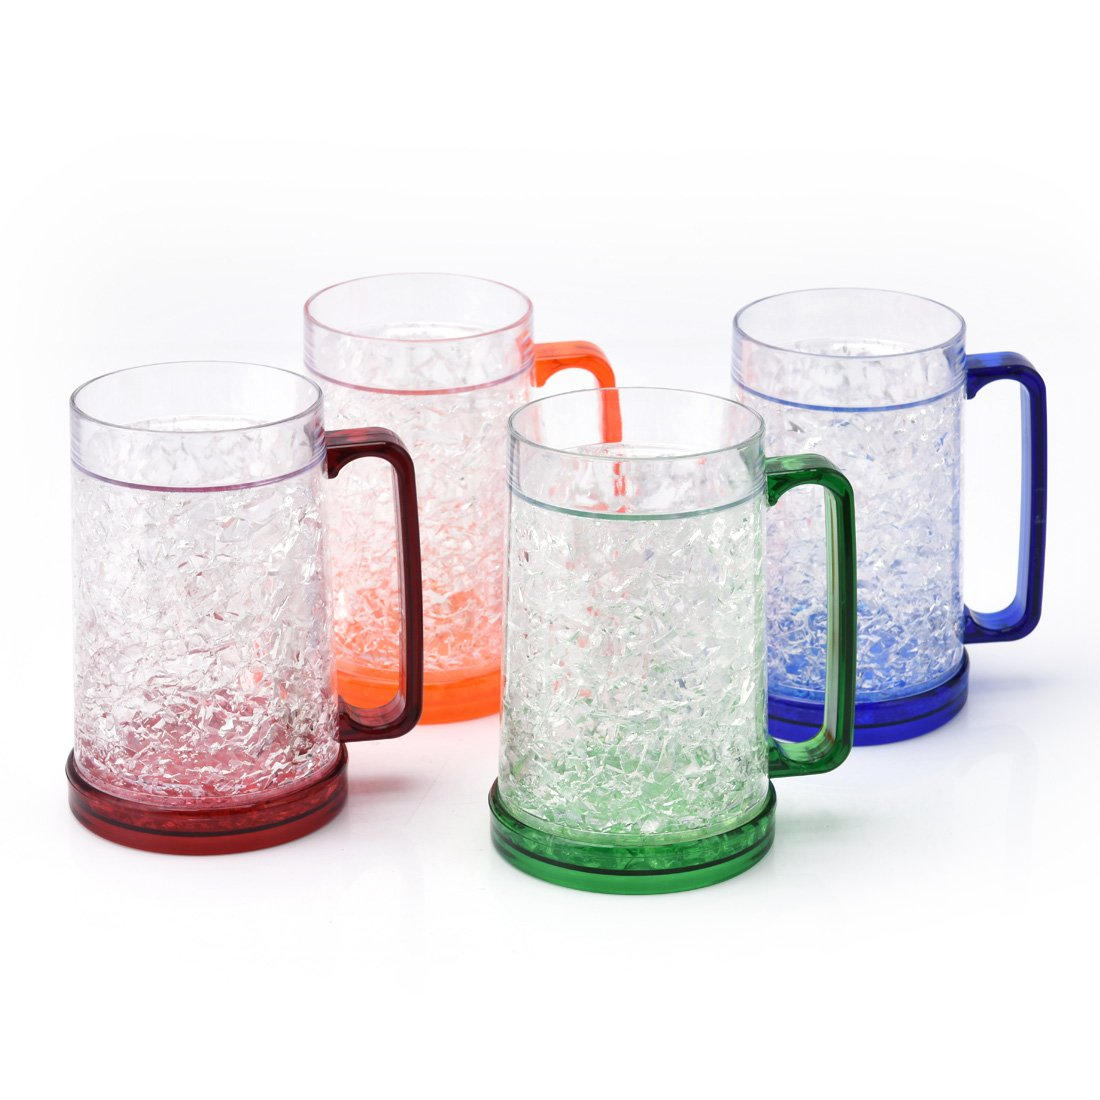 Freezer Mugs Beer Glass Set, Double Wall Gel Frozen Drinking Cup with Handle, Classic Style for Enjoying Milk, Juice, Soda at Parties, Outside Activity(Set of 4, Each for 15 oz)